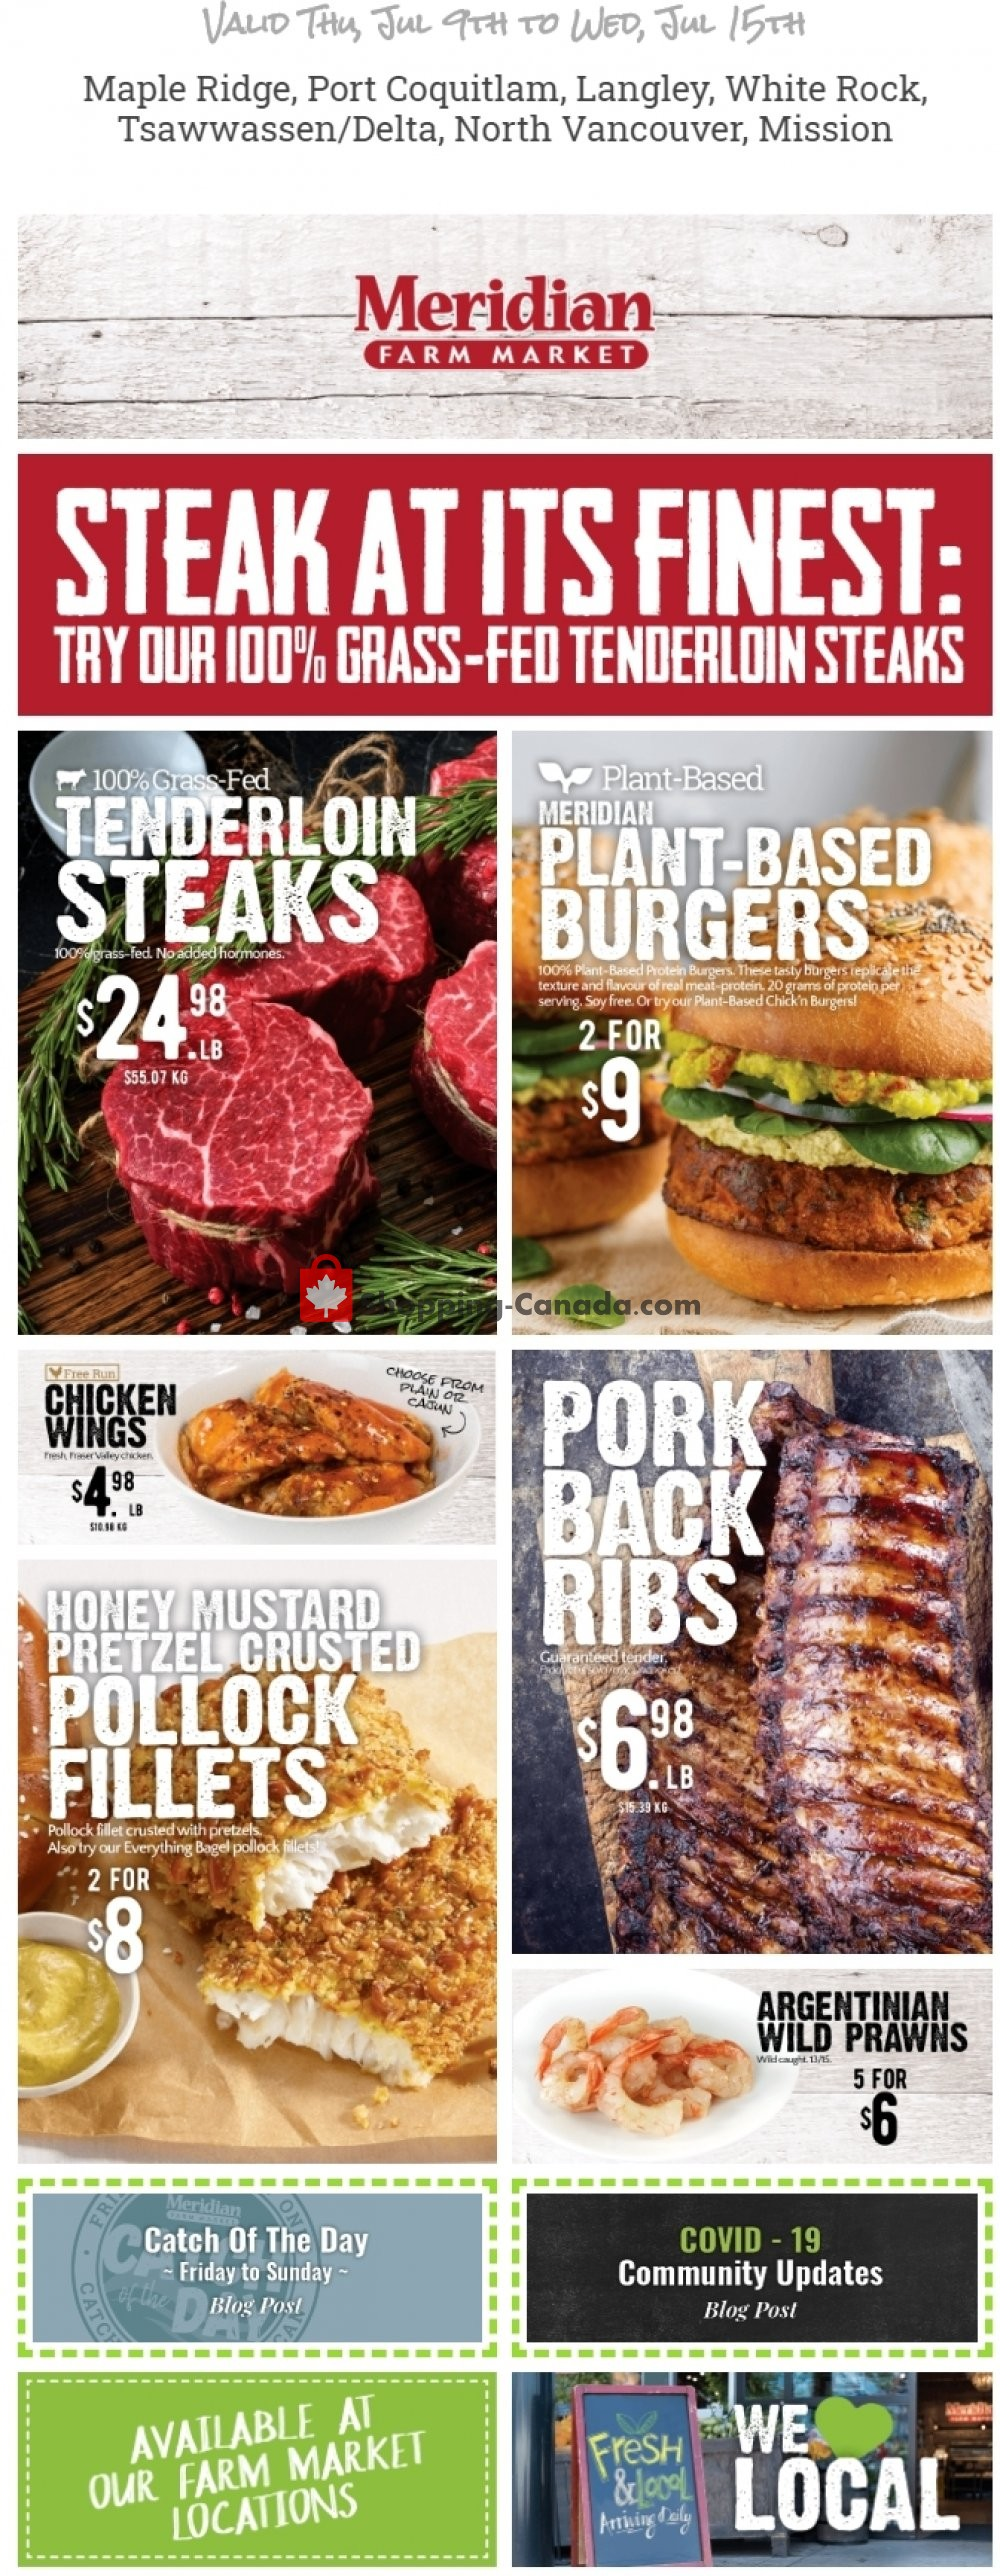 Flyer Meridian Meats & Meridian Farm Market Canada - from Thursday July 9, 2020 to Wednesday July 15, 2020